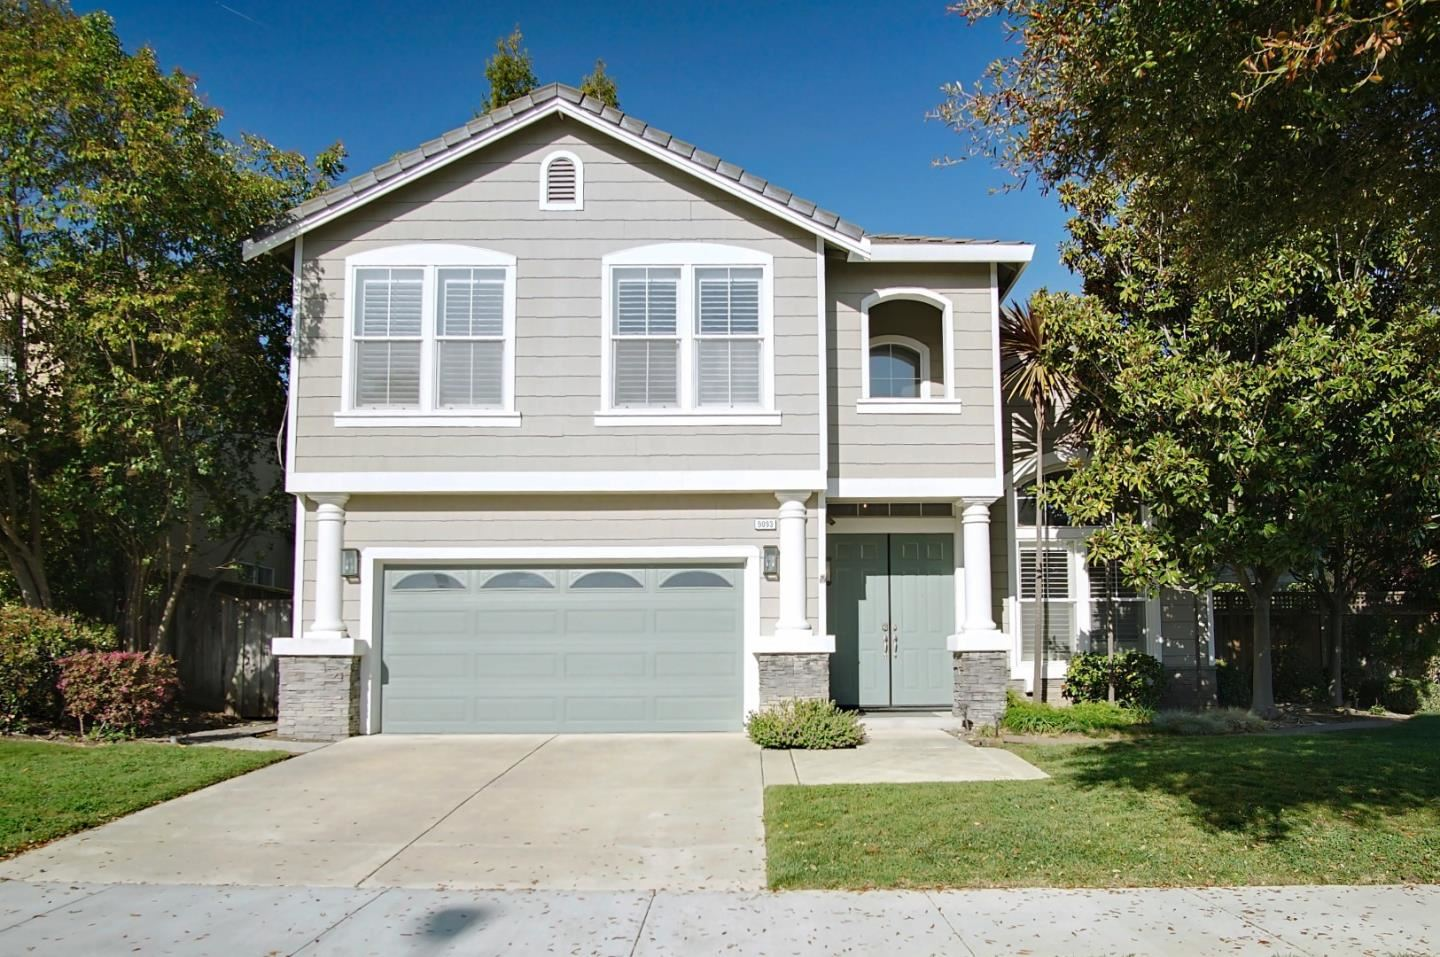 Photo for 9093 Rancho Hills DR, GILROY, CA 95020 (MLS # ML81837026)